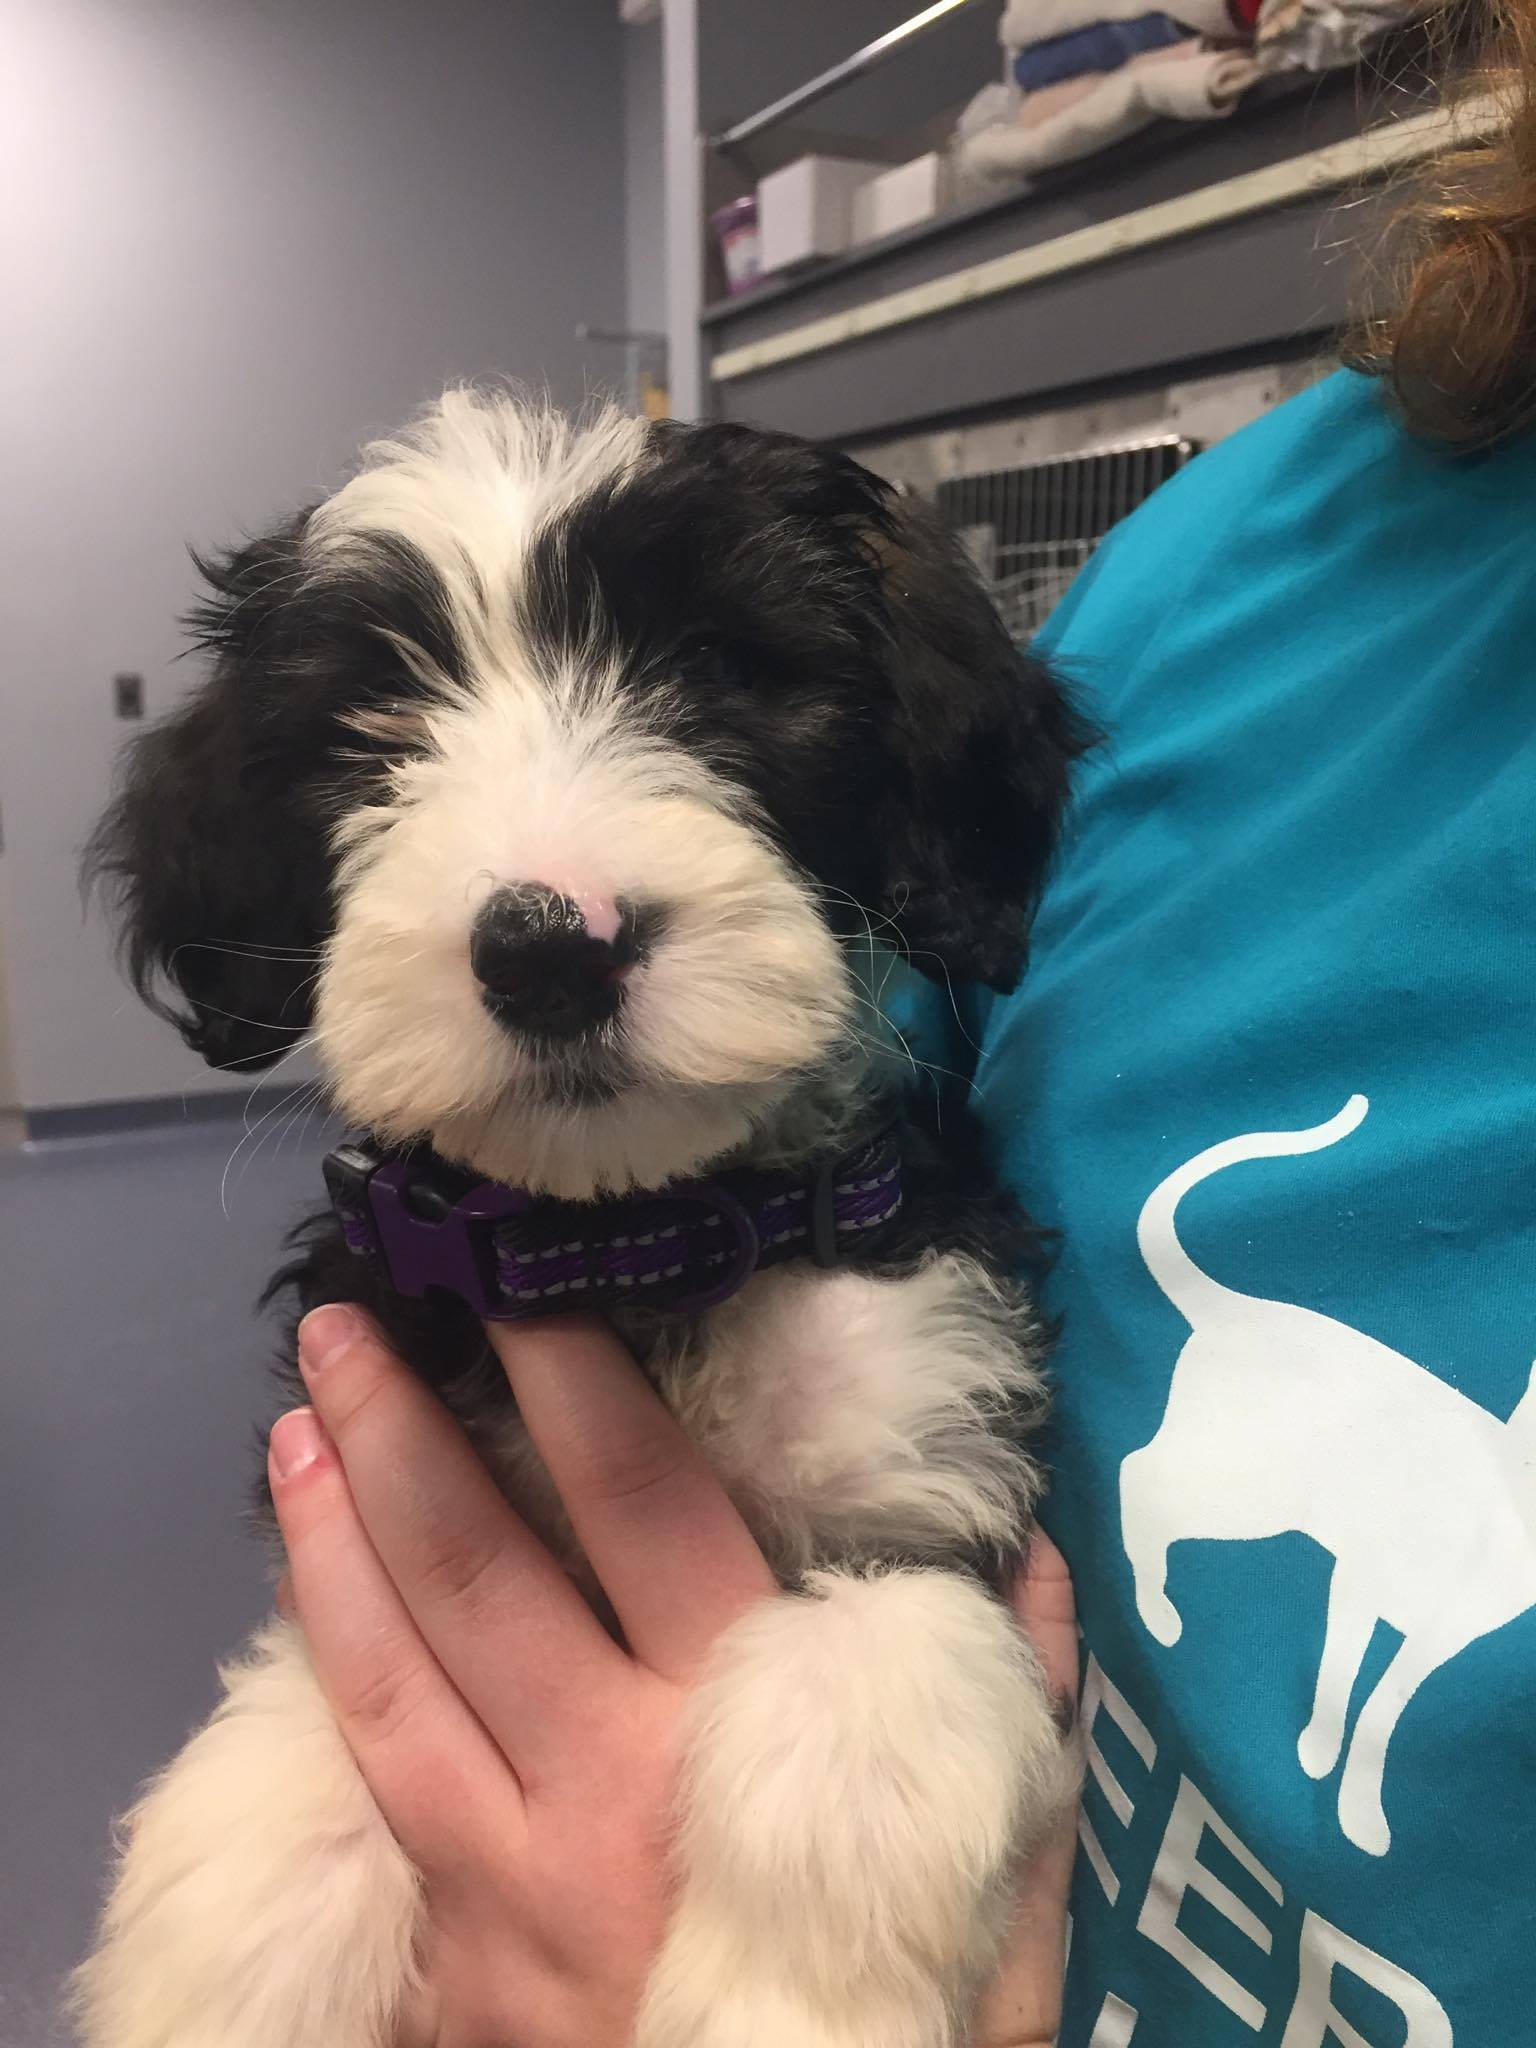 An old English Sheepdog Puppy being seen by a veterinarian in Jefferson MD, located in scenic Frederick county MD